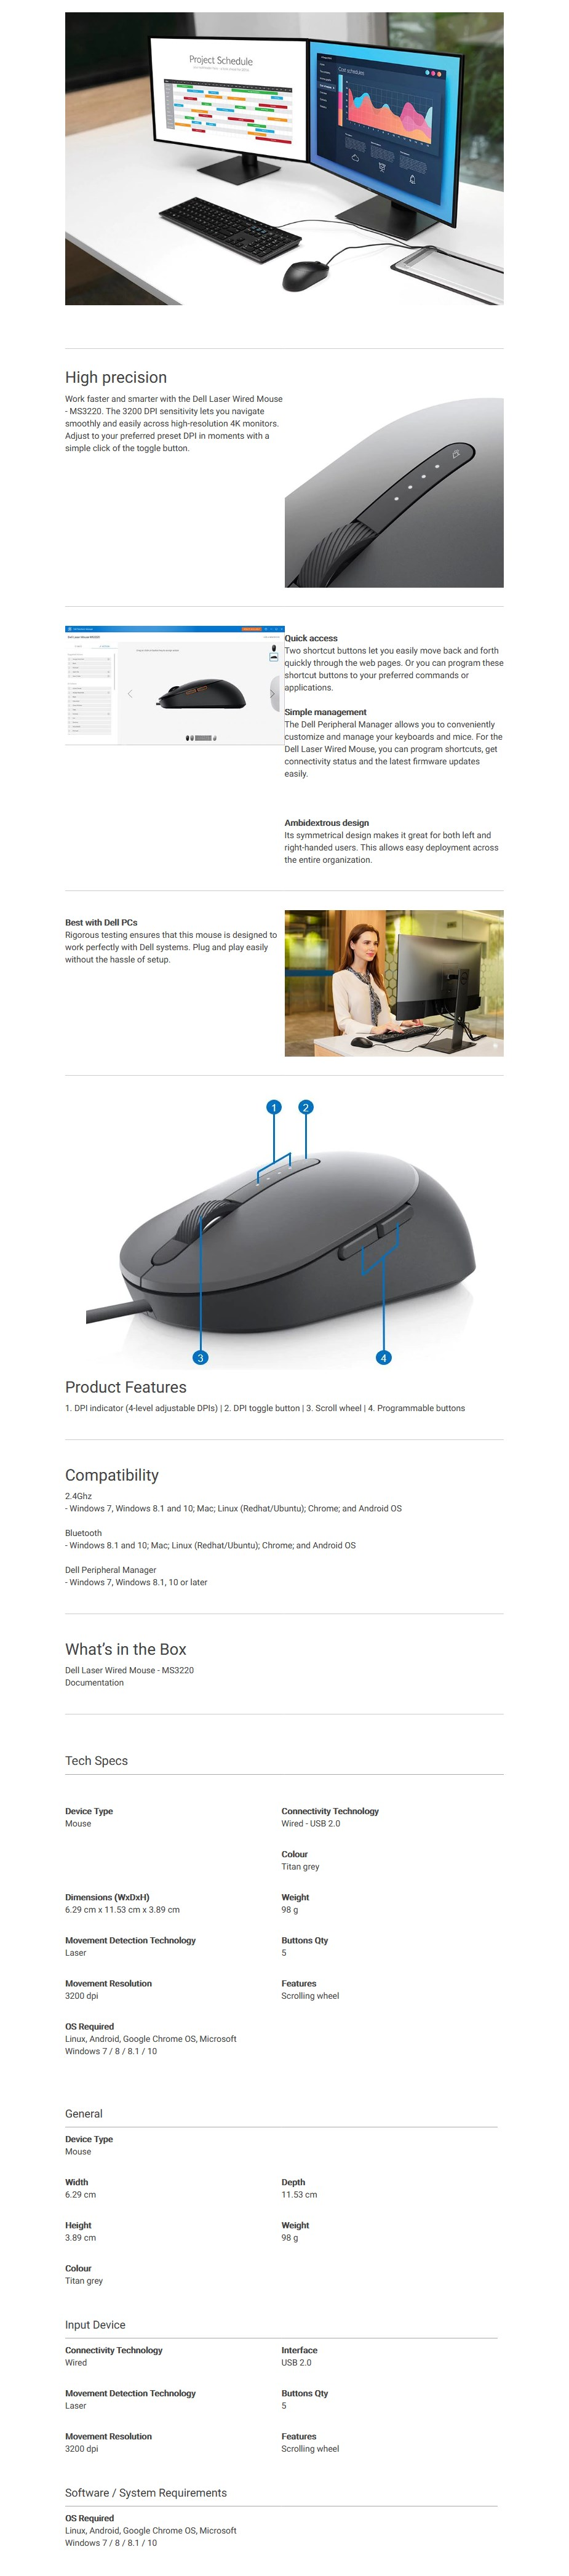 Dell MS3220 Laser Wired Mouse - Overview 1